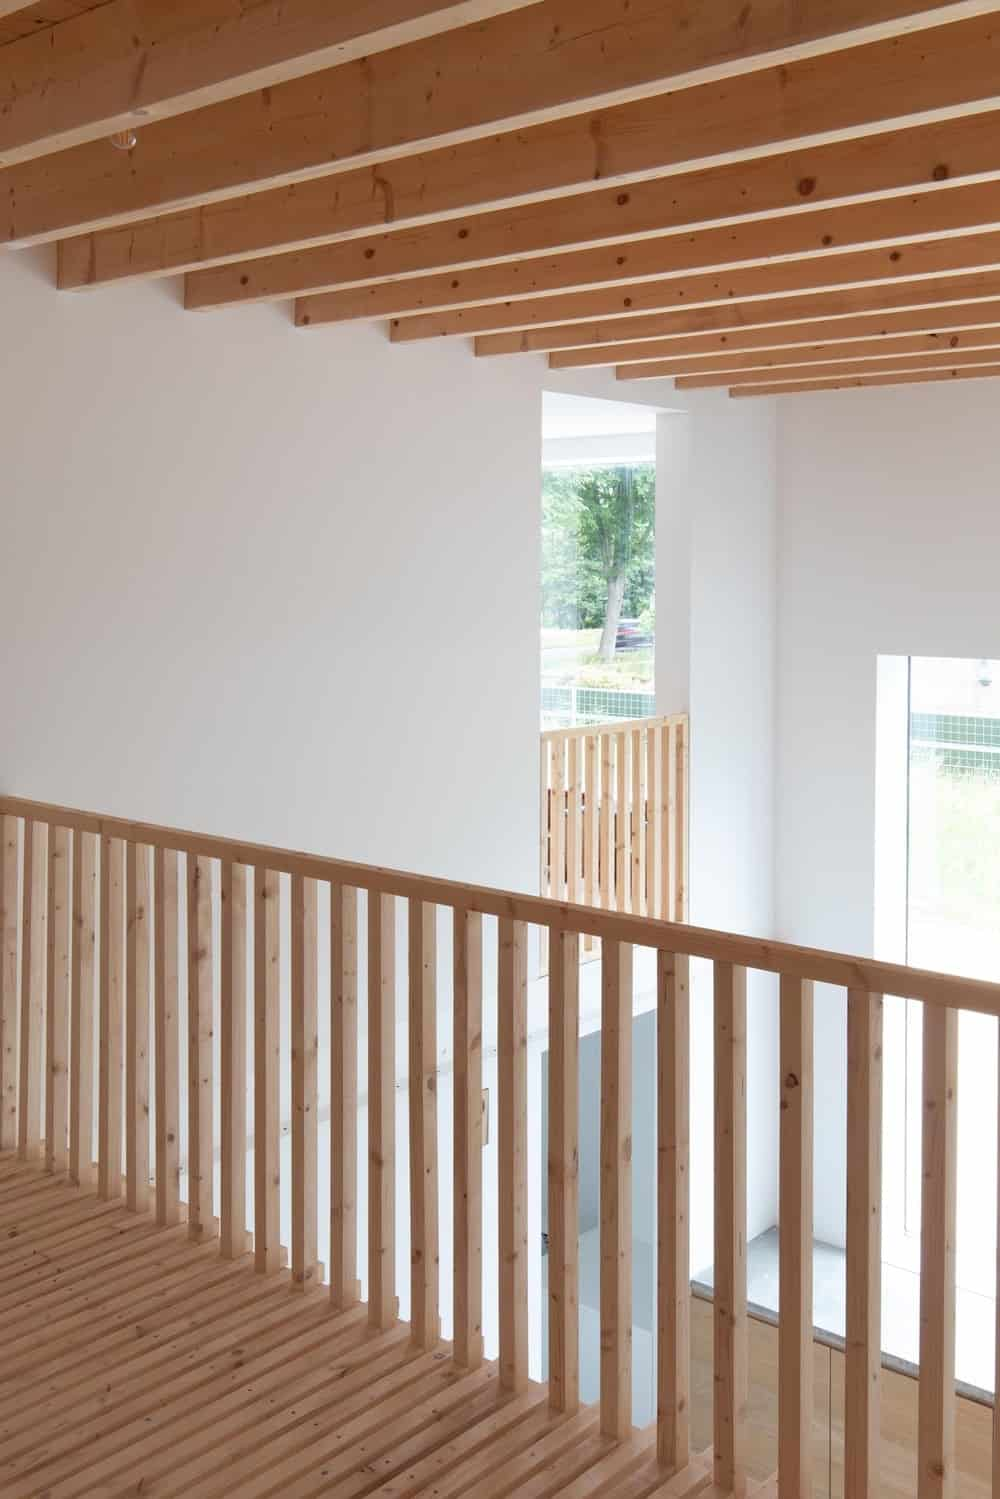 This is the indoor balcony looking over the kitchen with a wooden set of railing that matches with the hardwood flooring and the beamed ceiling.